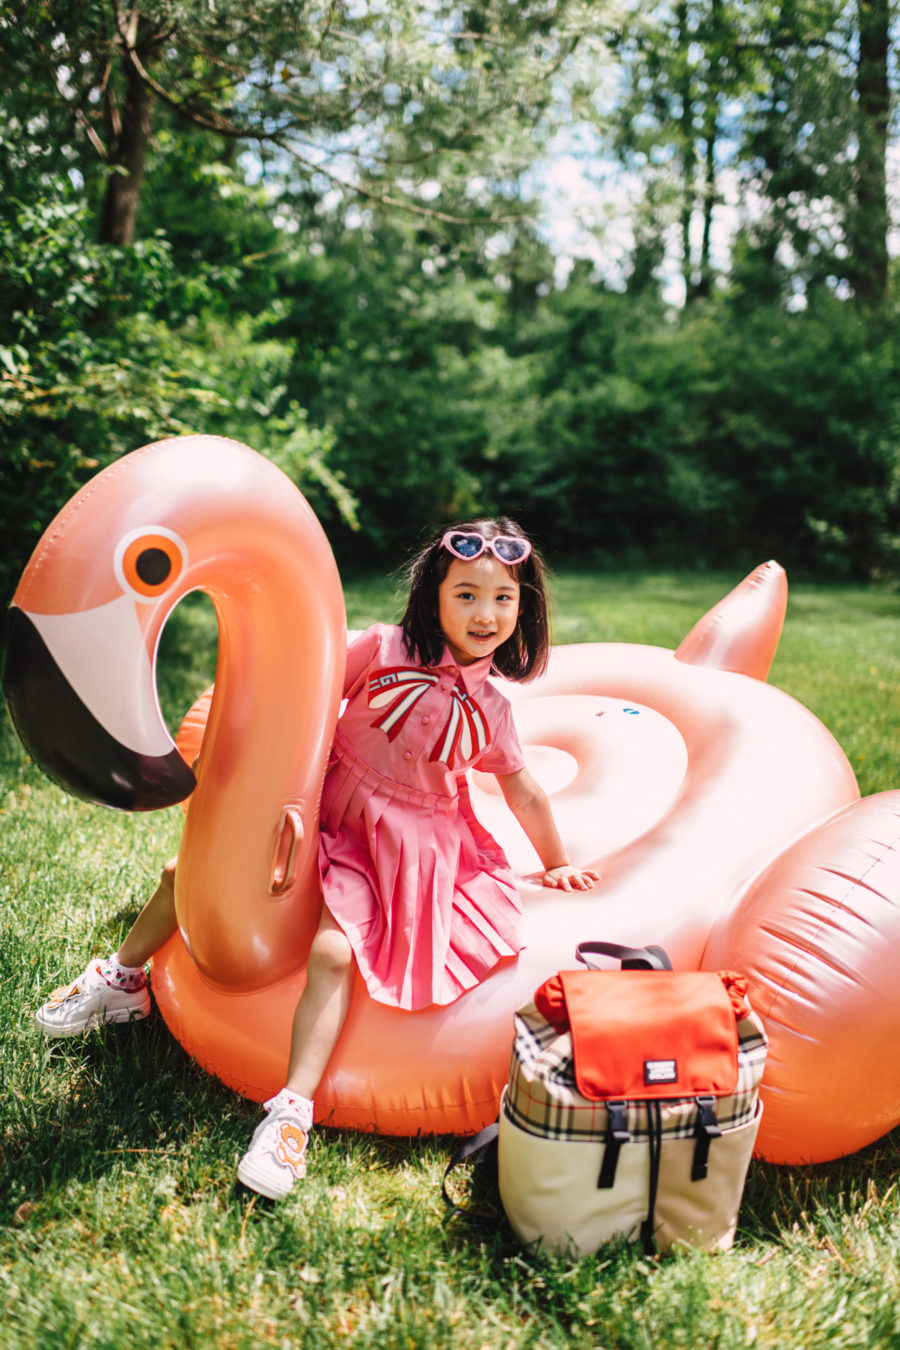 jessica wang's daughter wearing gucci dress on flamingo float // Jessica Wang - Notjessfashion.com